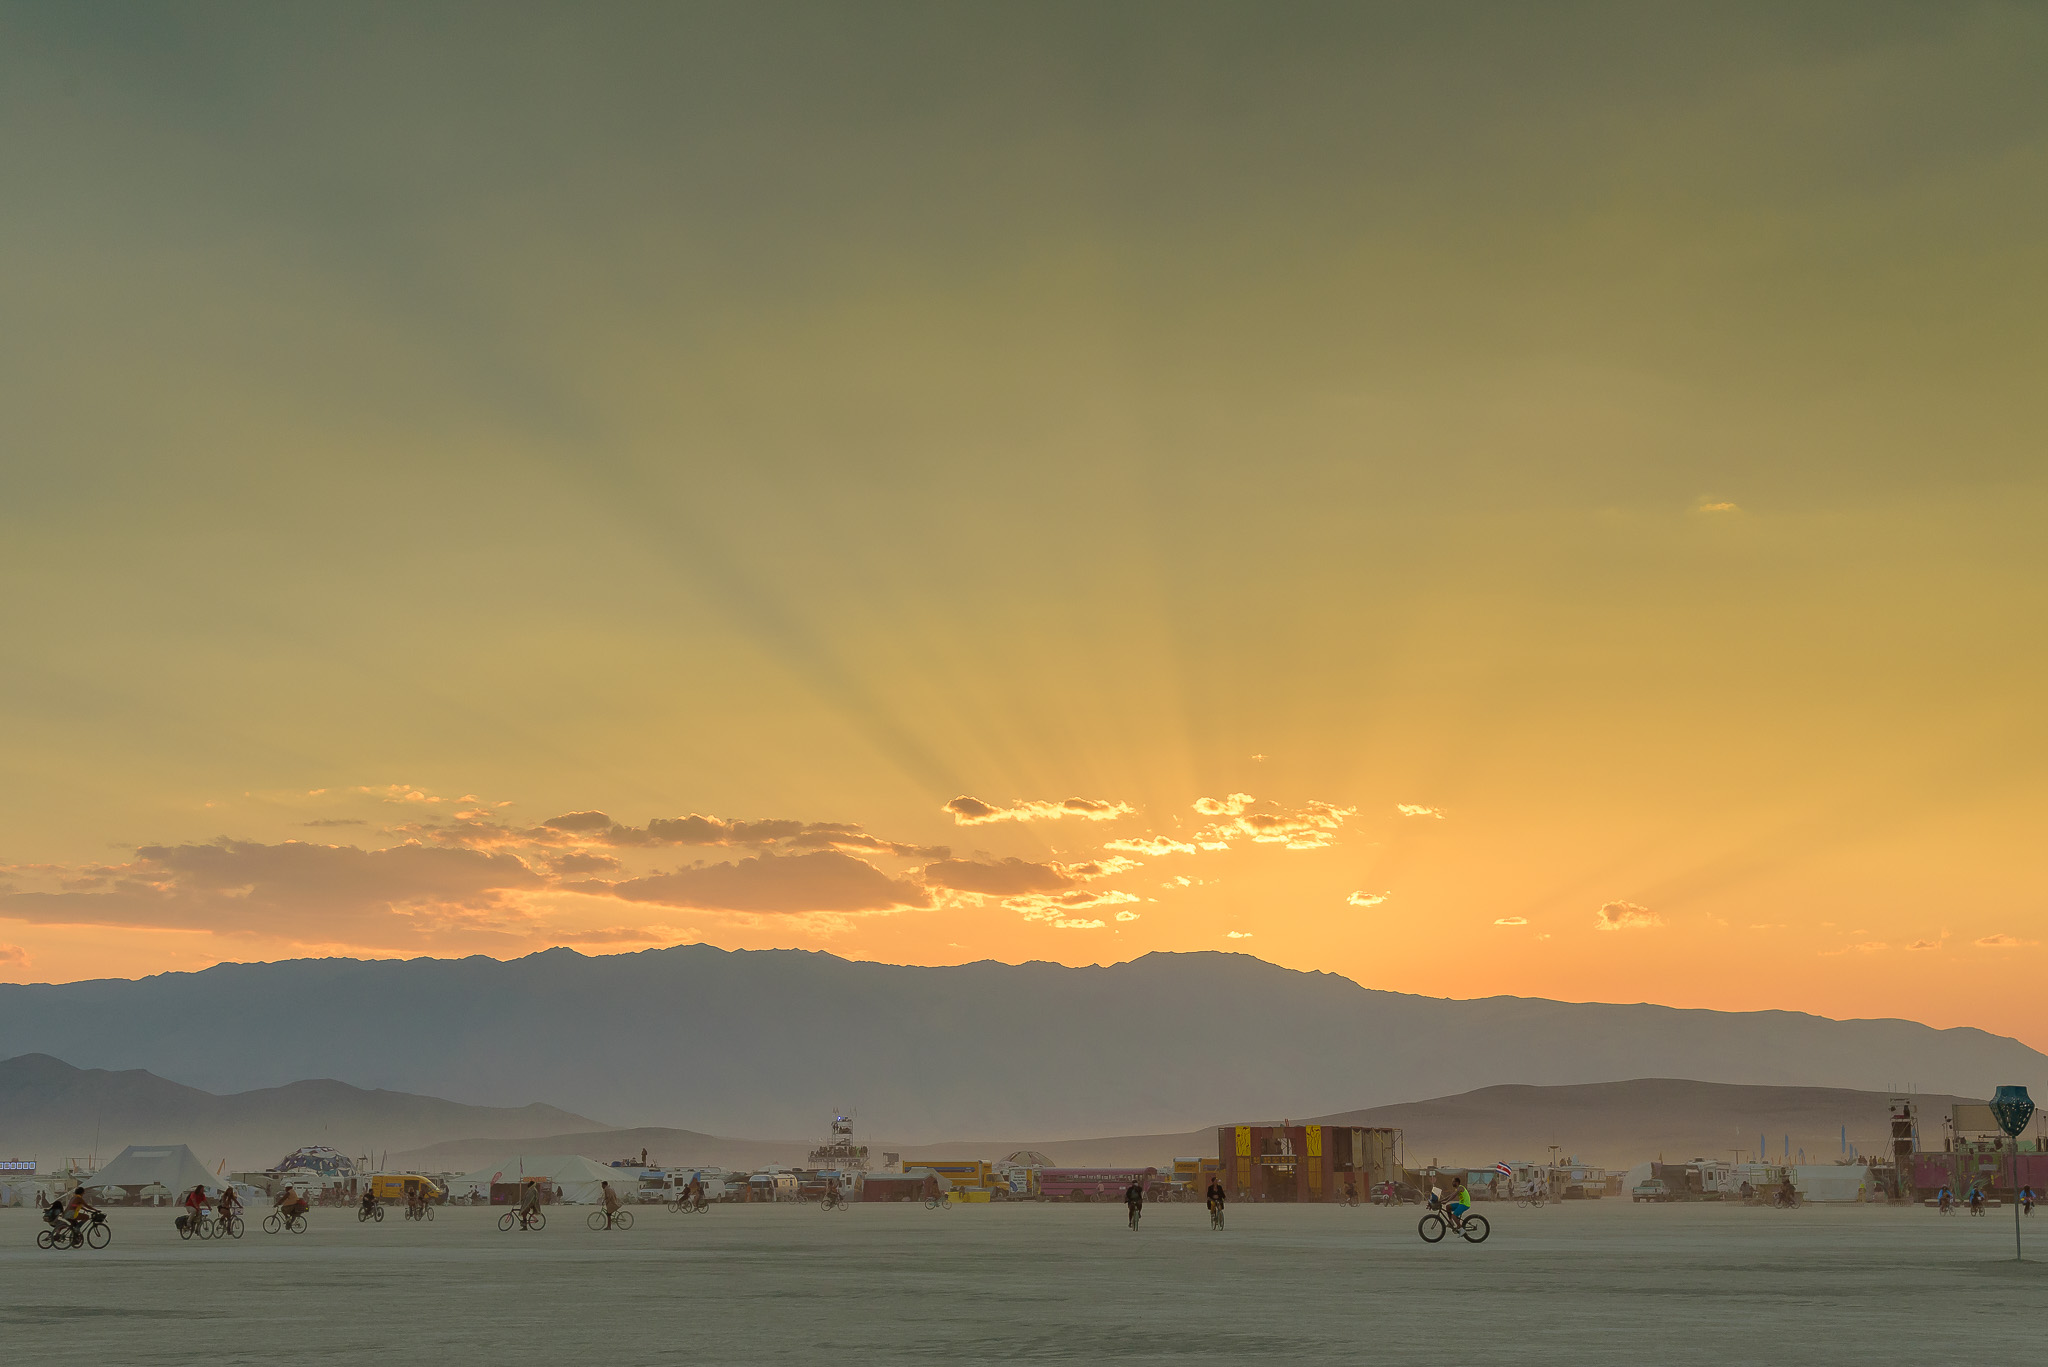 A proper sunset set send off on Friday, just as the city's energy was rising. Black Rock City, NV.